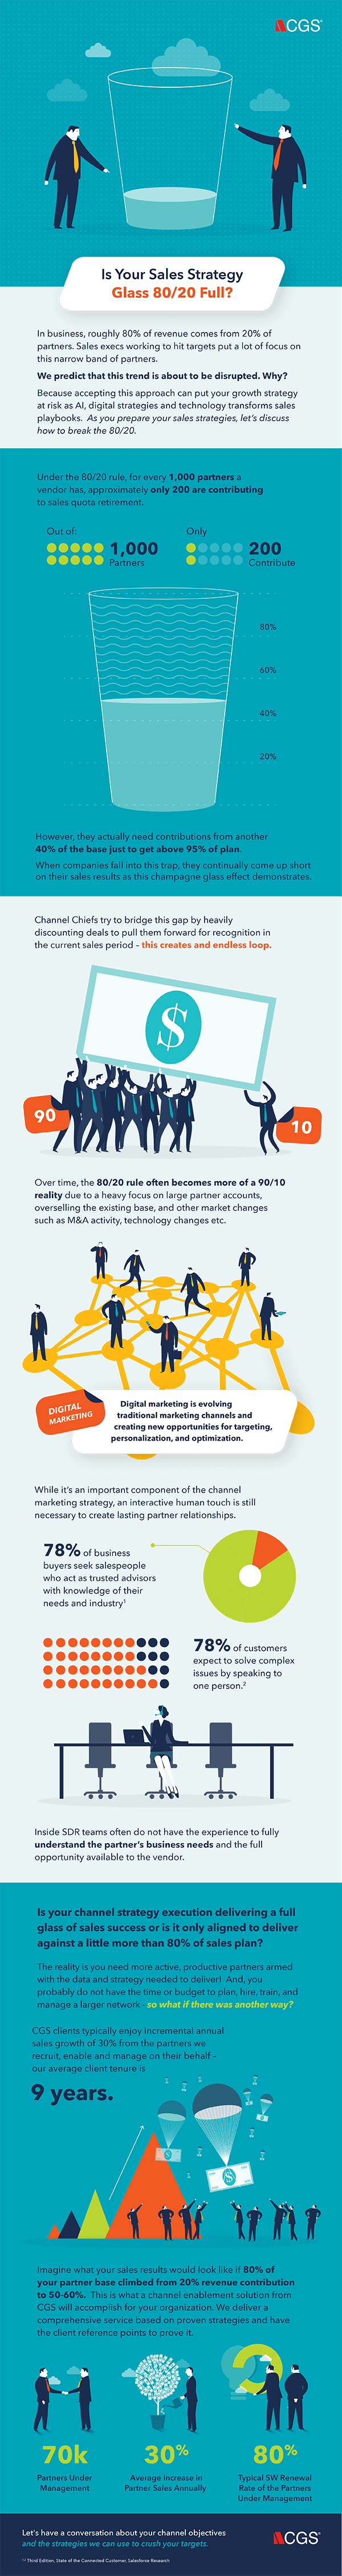 Channel Partner Sales 2020 infographic